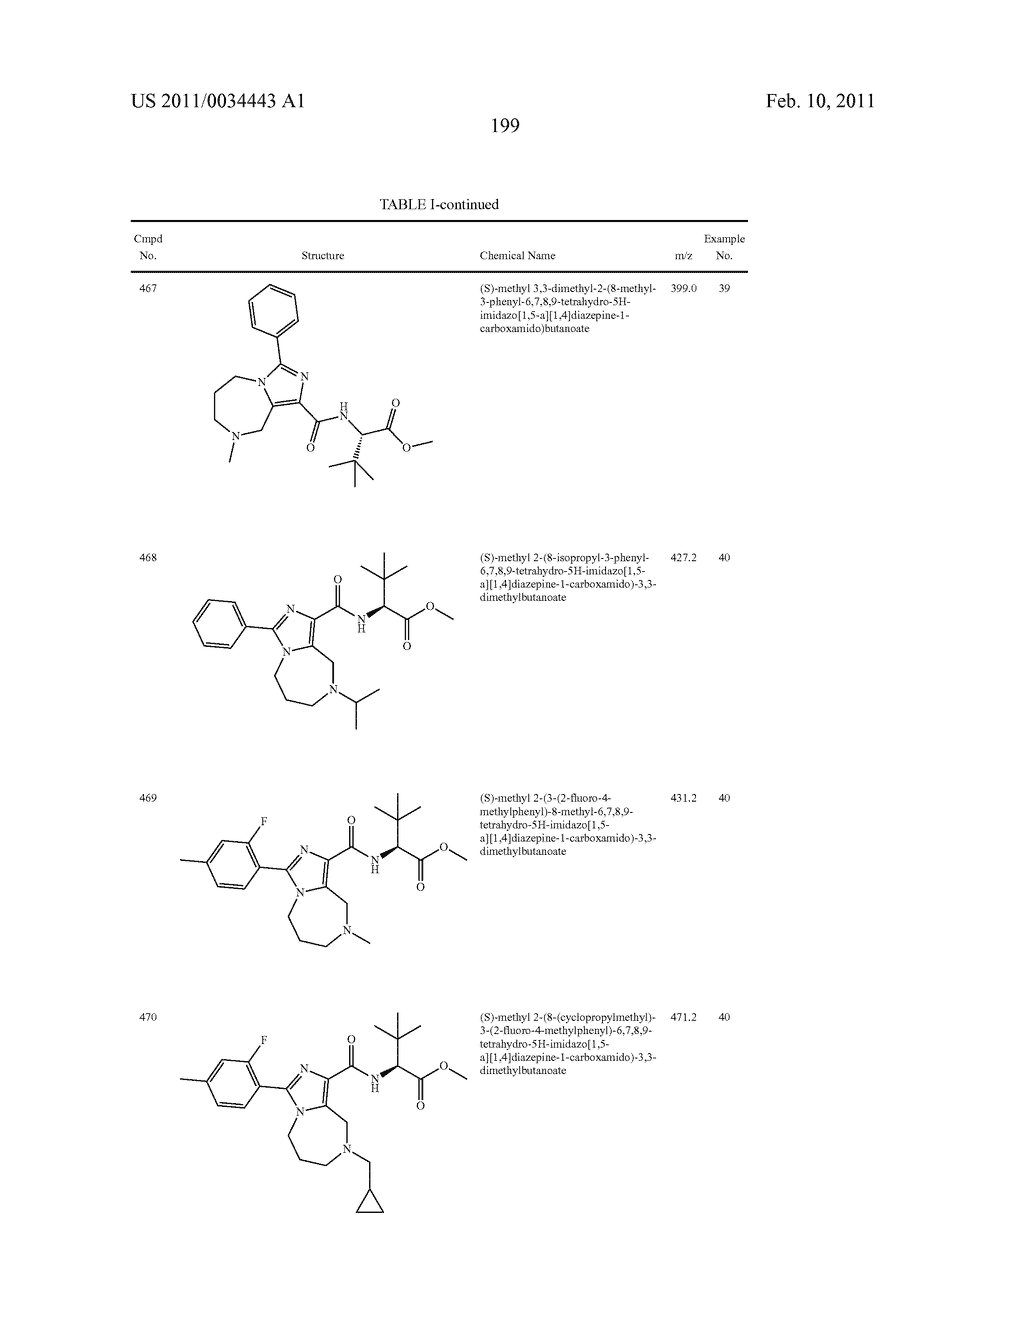 USES OF SUBSTITUTED IMIDAZOHETEROCYCLES - diagram, schematic, and image 203